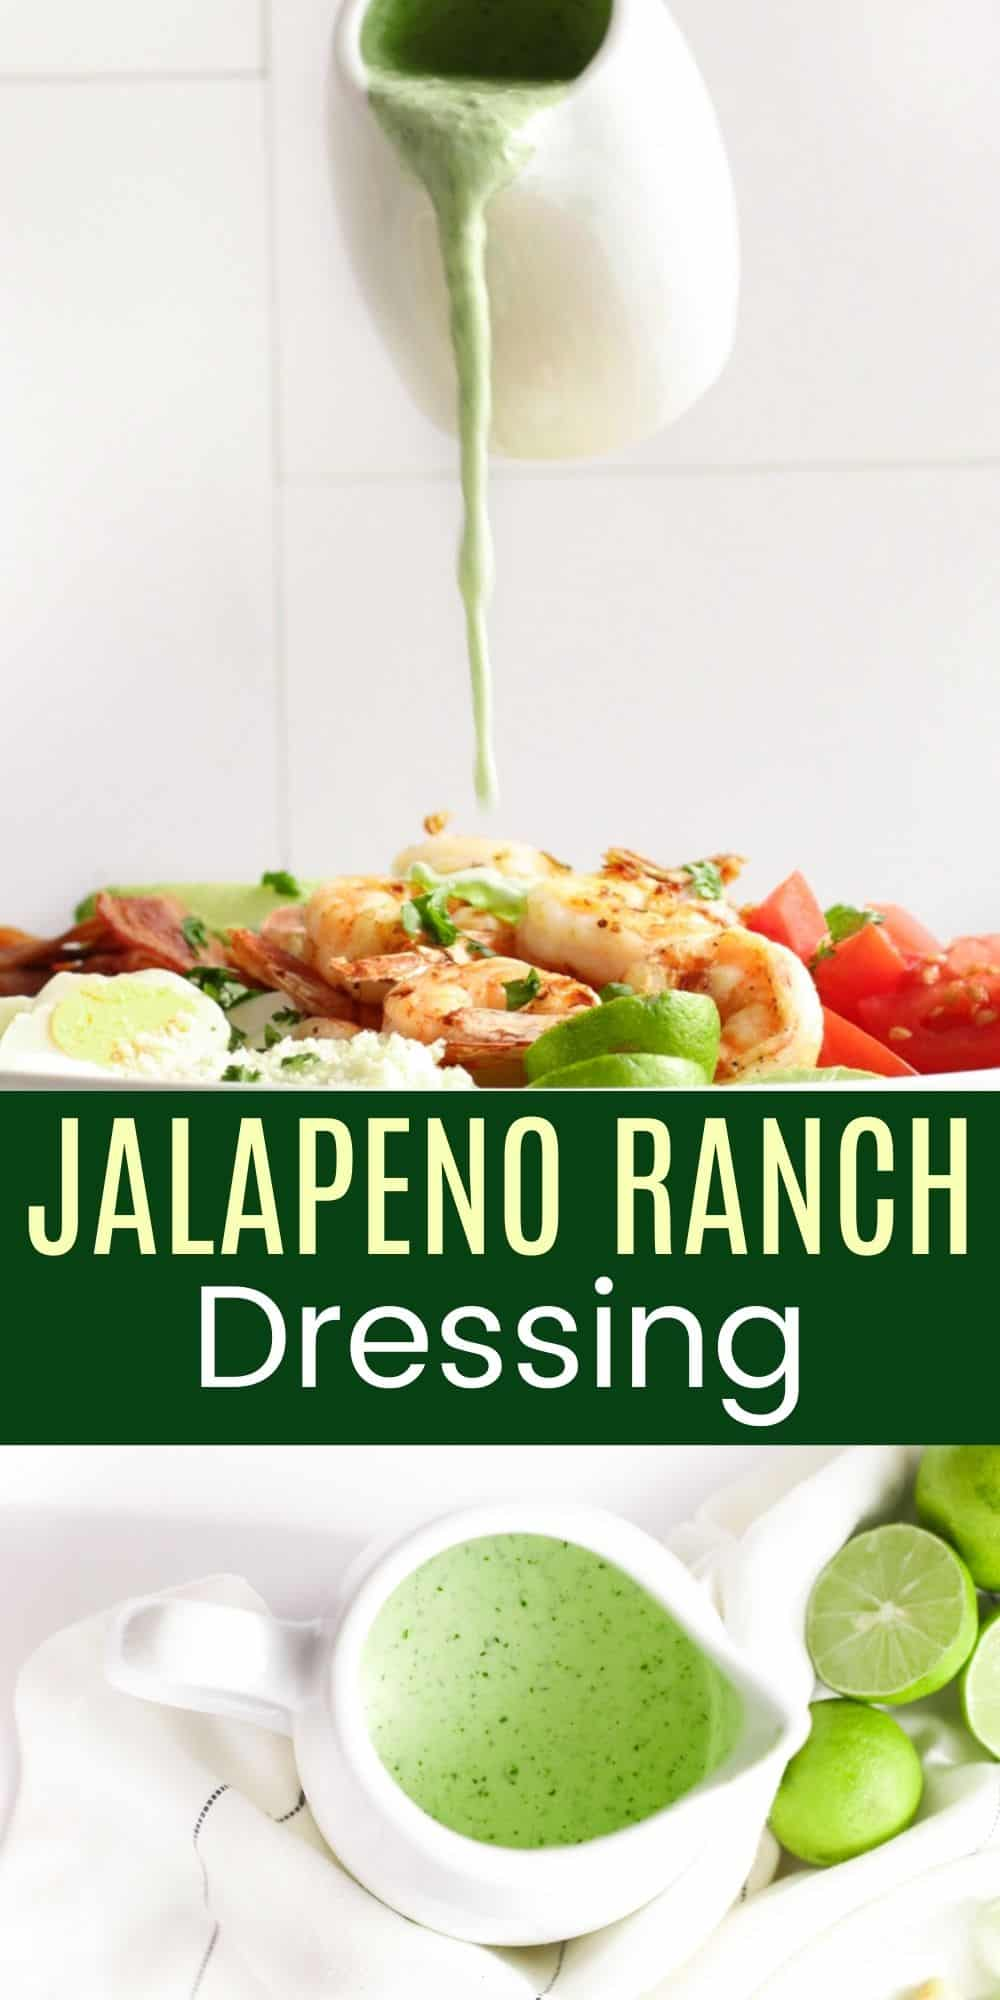 pouring jalapeno ranch over a salad plus a white pitcher of the dressing